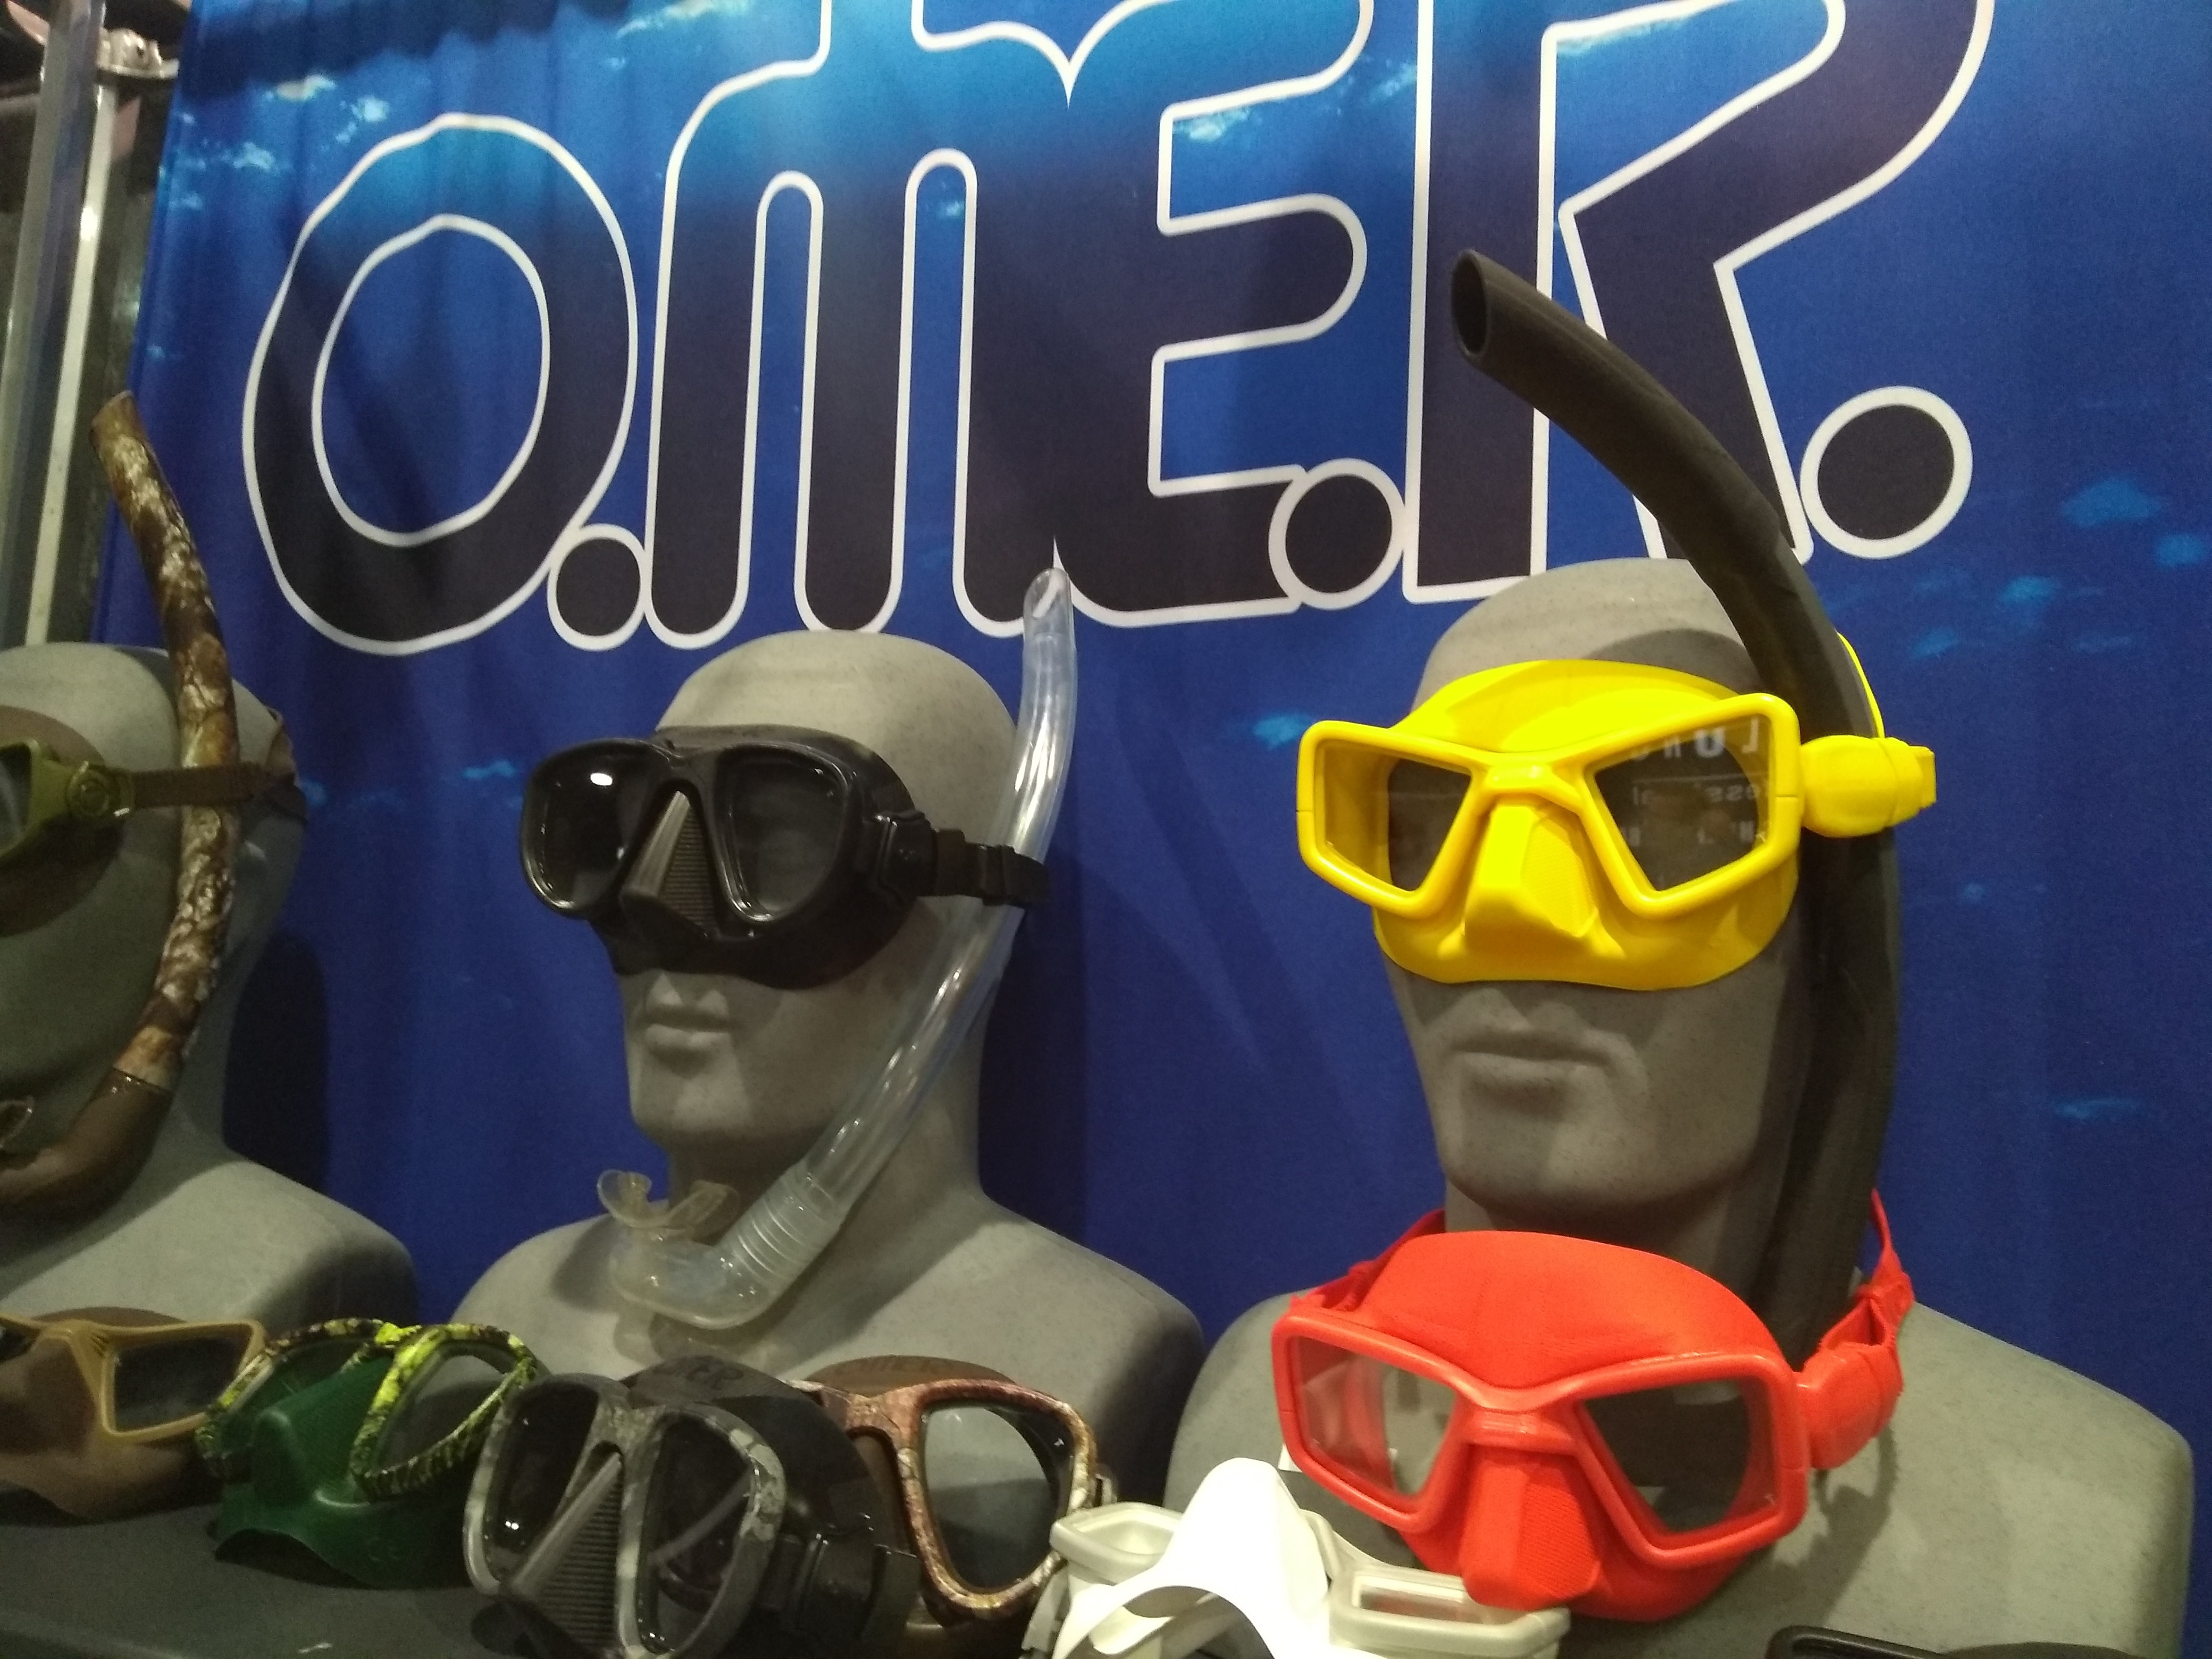 Omer's UP-M1 low-volume, freediving mask